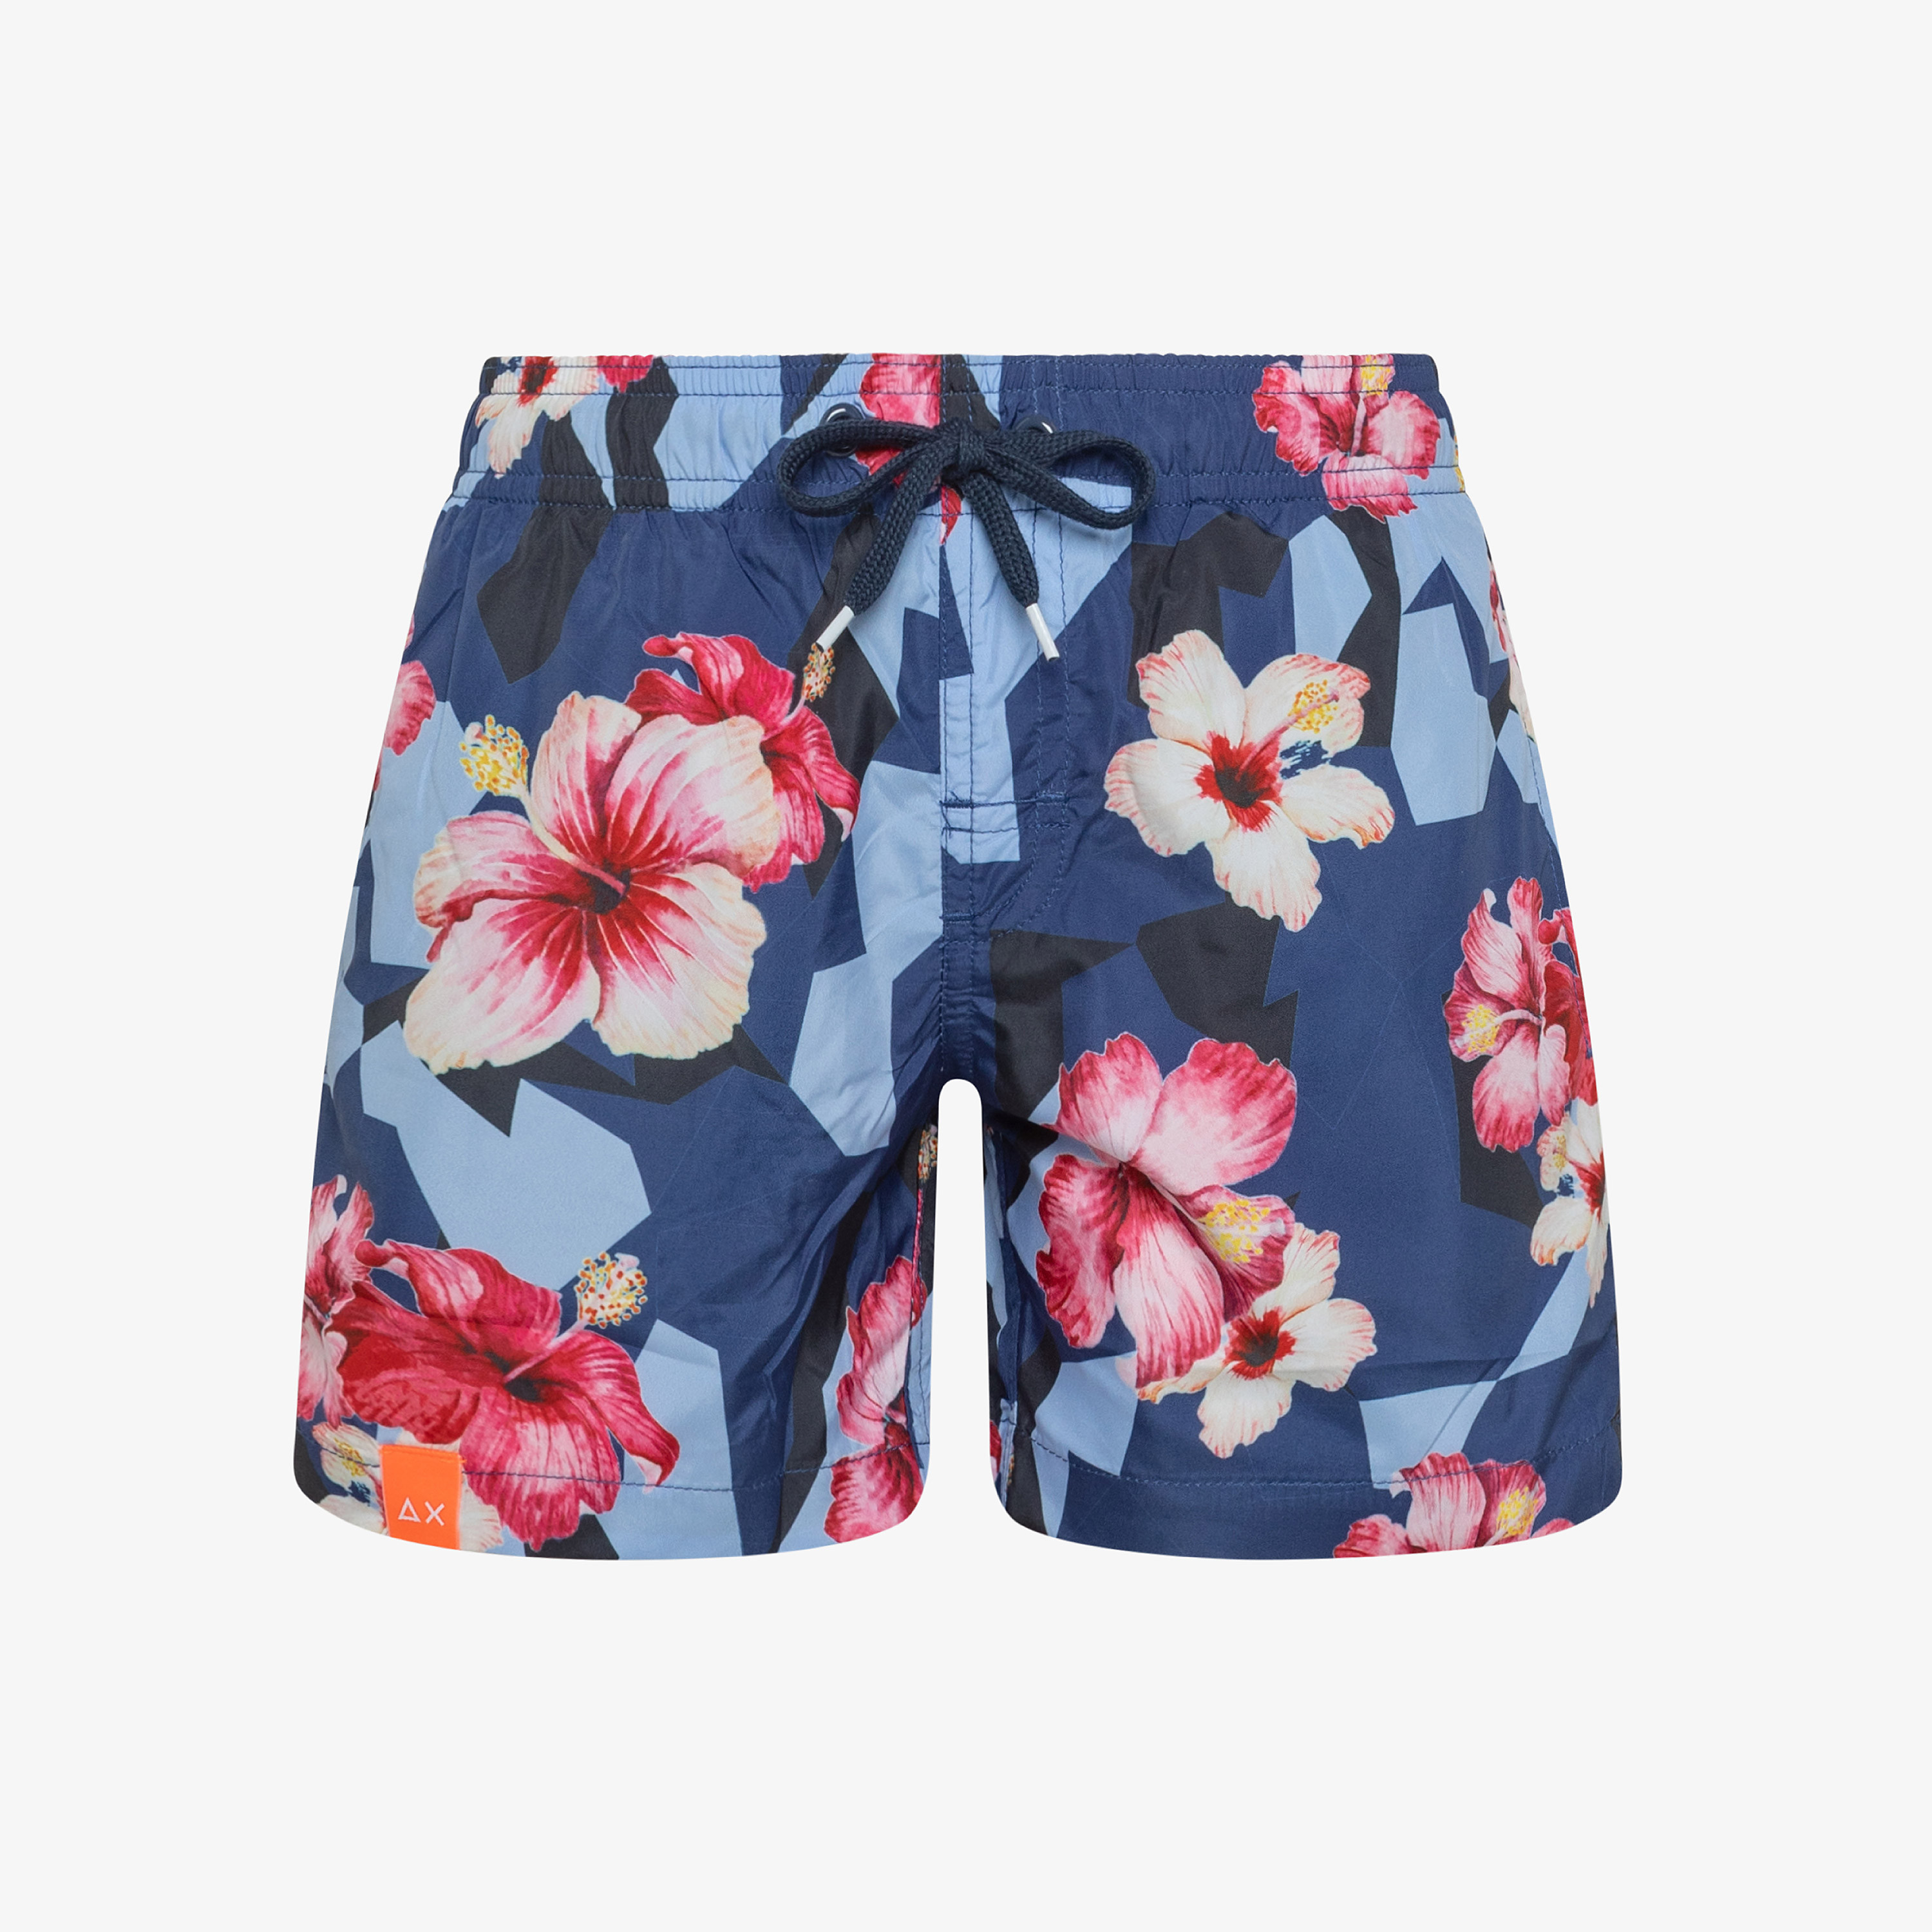 BOY'S SWIM PANT CAMOUFLAGE NAVY BLUE/FUXIA